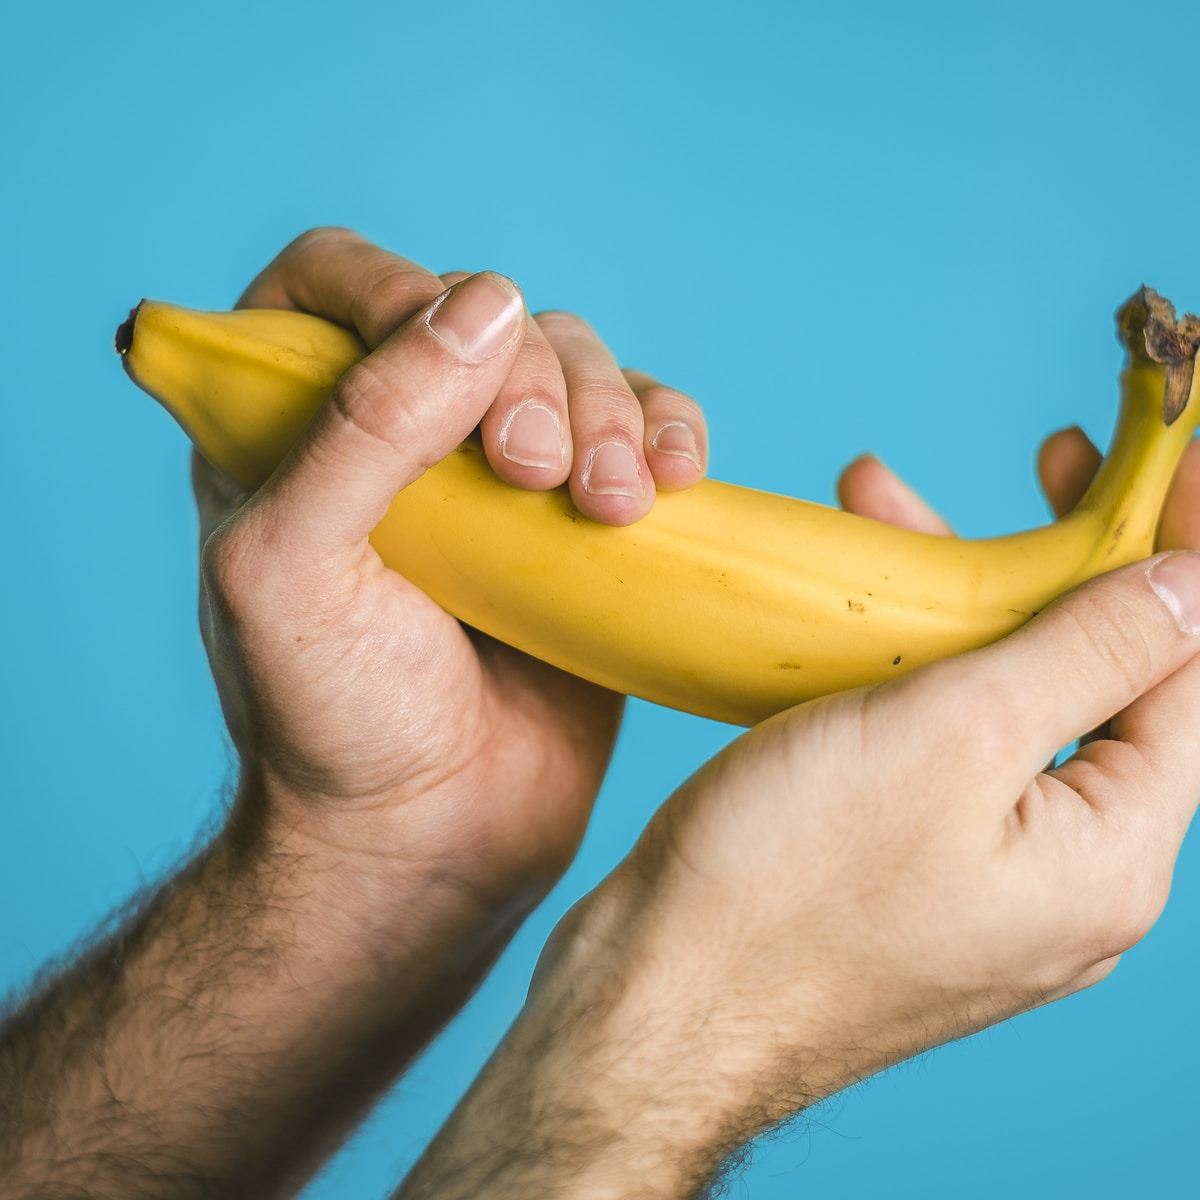 tamaño del pene, person holding banana